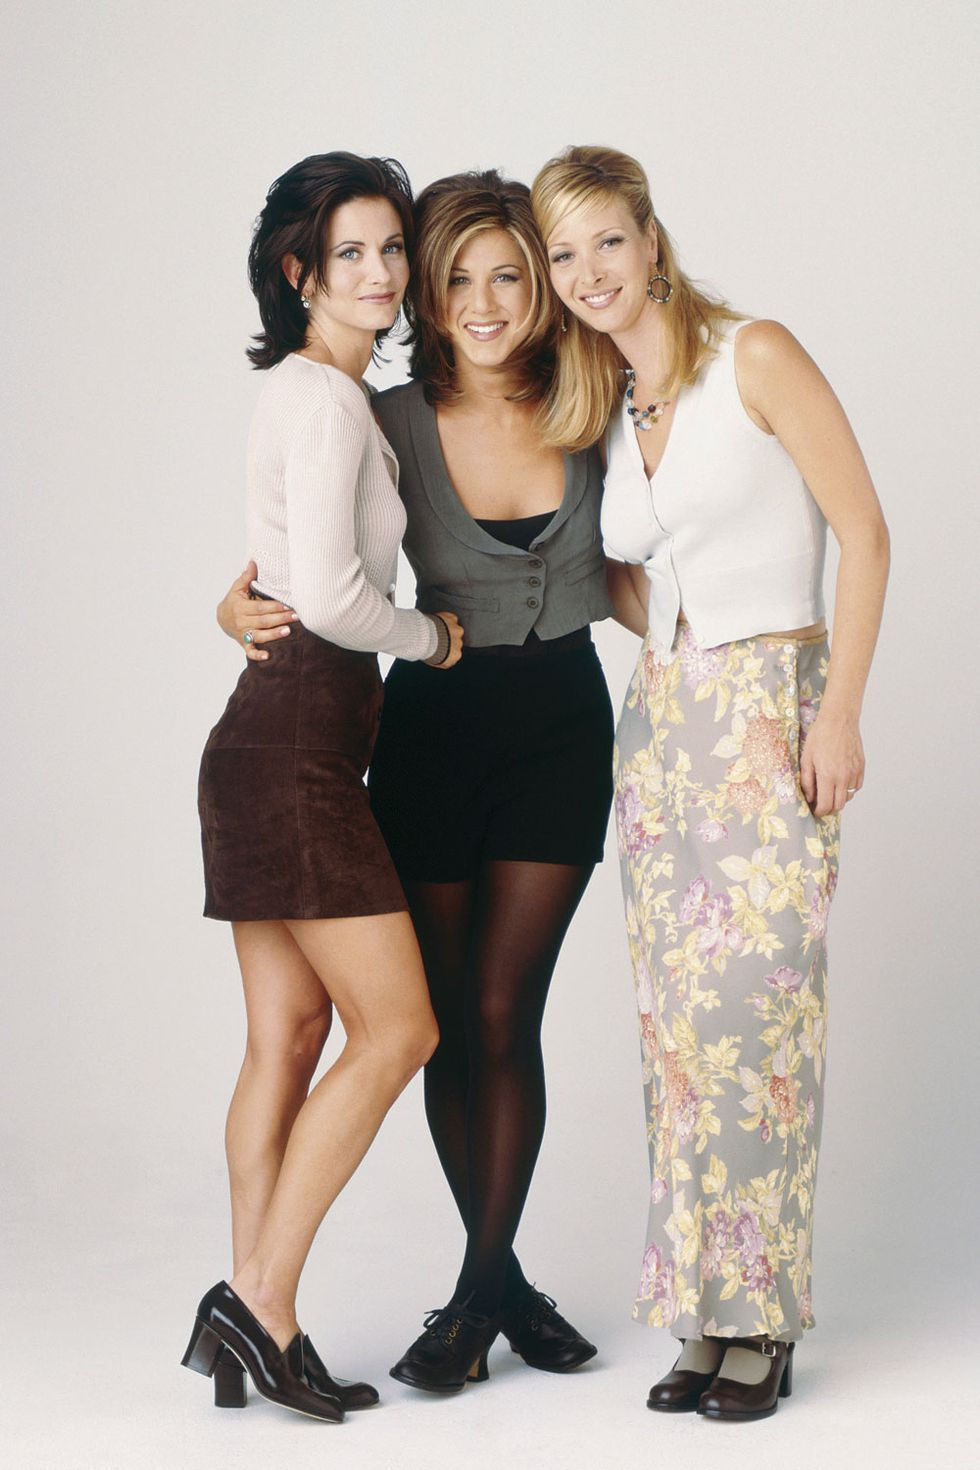 10 Things You Never Know About Friends